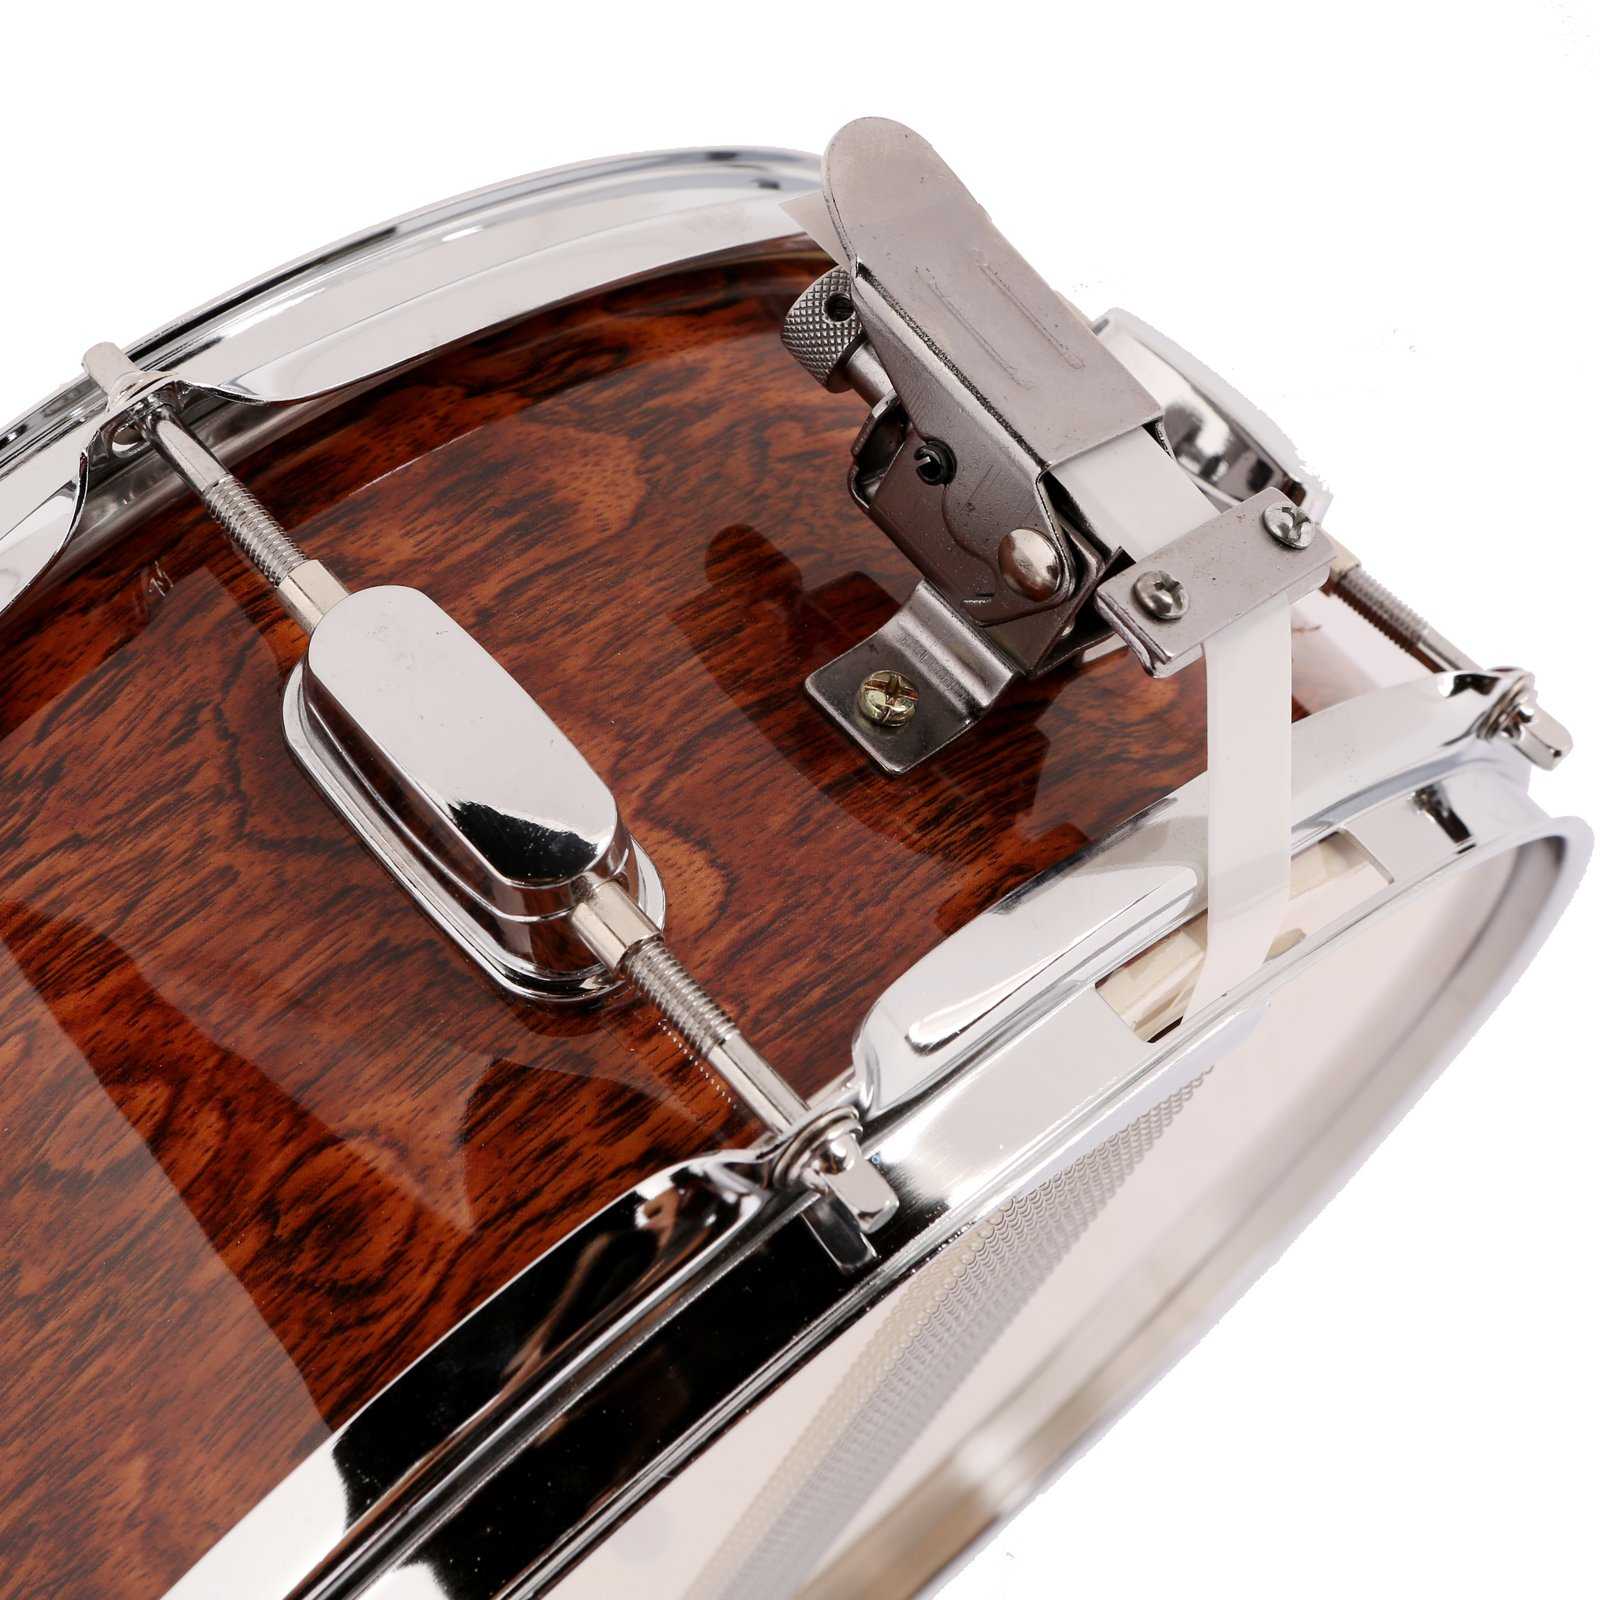 LAGRIMA Student Beginner Snare Drum W/Drum Key, Drumsticks and Strap|14x5.5 inch|Real Wood Shell|8 Metal Tuning Lugs by LAGRIMA (Image #6)